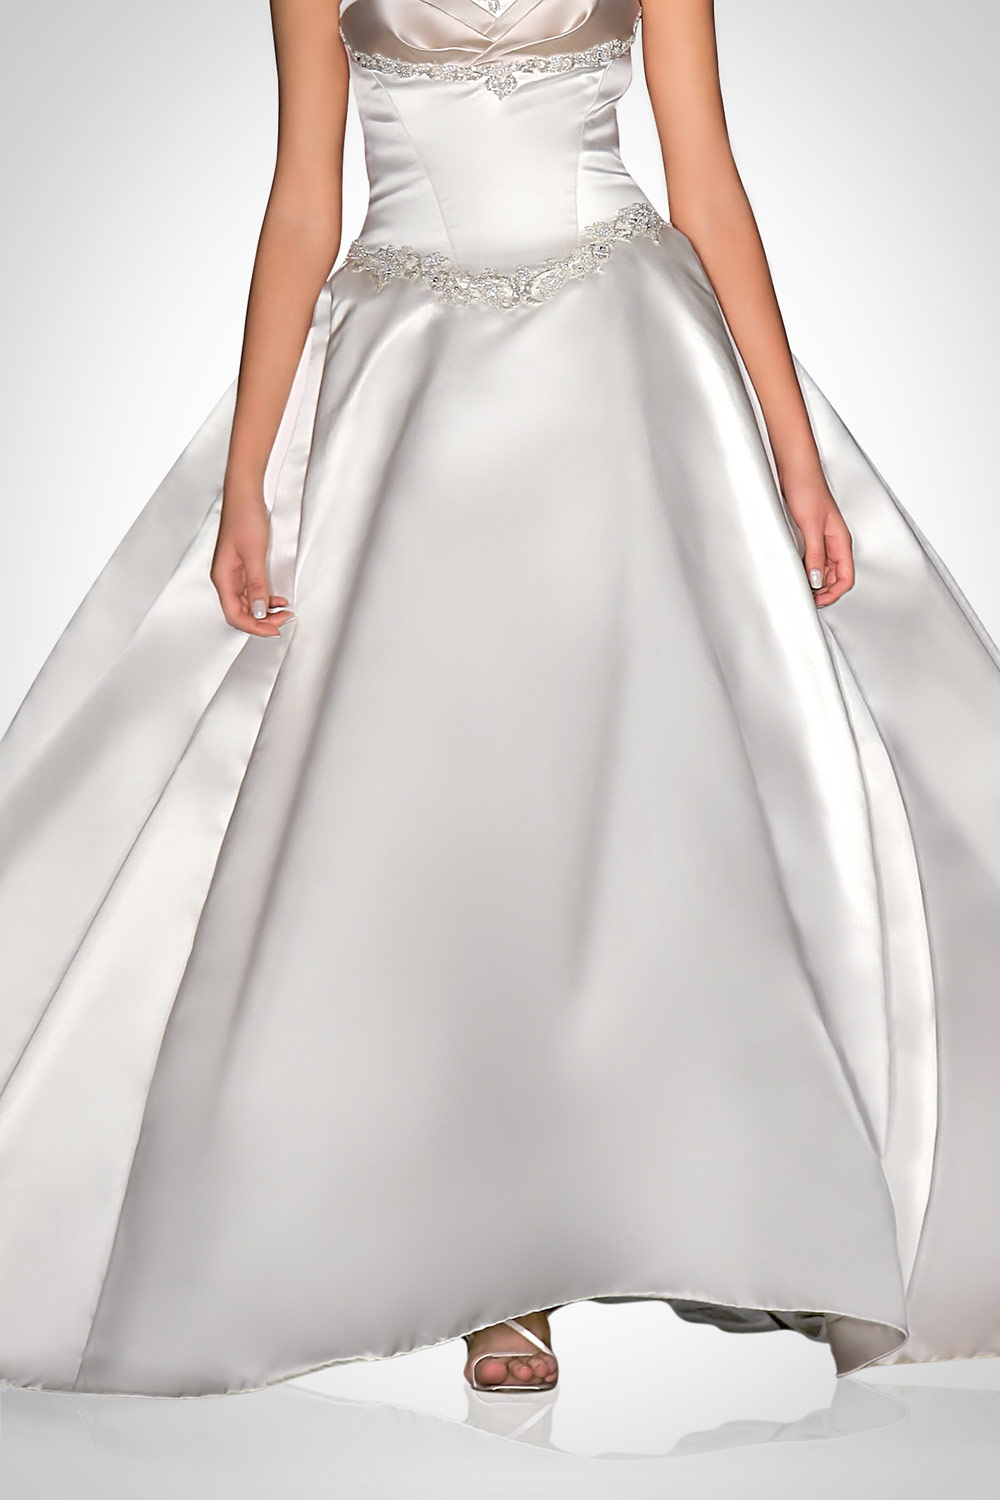 background removal on dress product smoothing